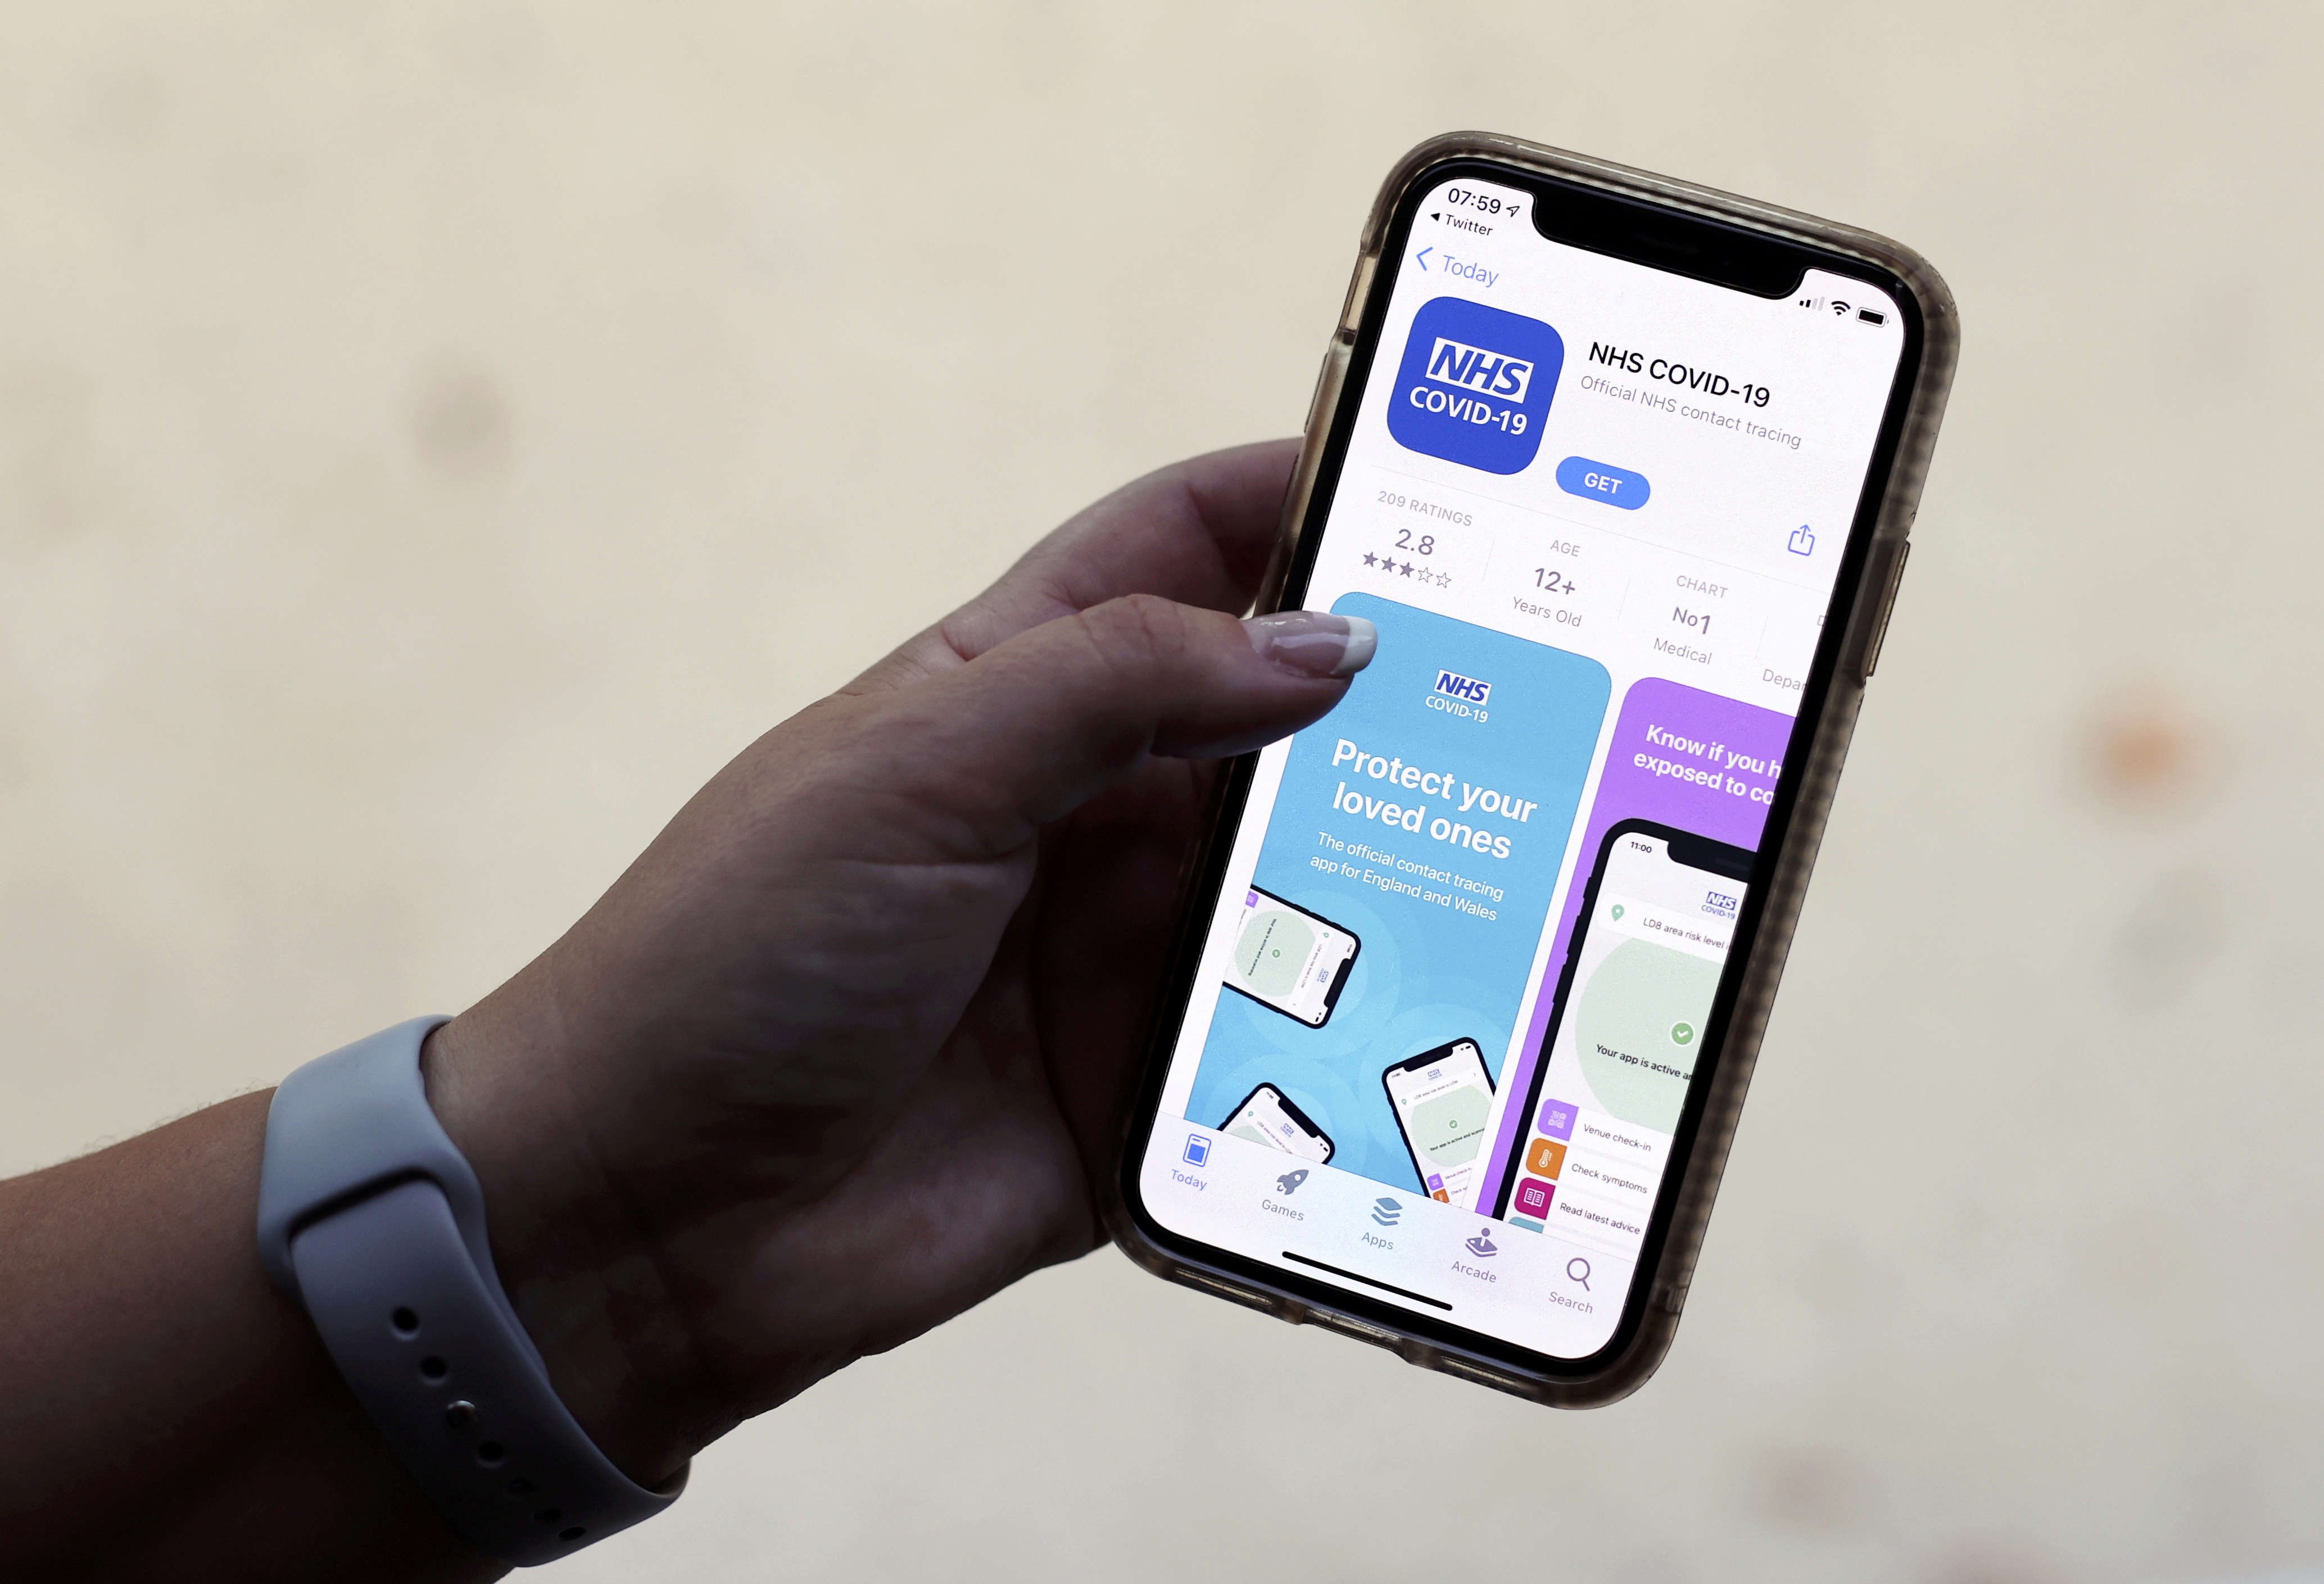 The coronavirus disease (COVID-19) contact tracing smartphone app of Britain's National Health Service (NHS) is displayed on an iPhone in this illustration photograph taken in Keele, Britain, September 24, 2020. REUTERS/Carl Recine/Illustration/File Photo